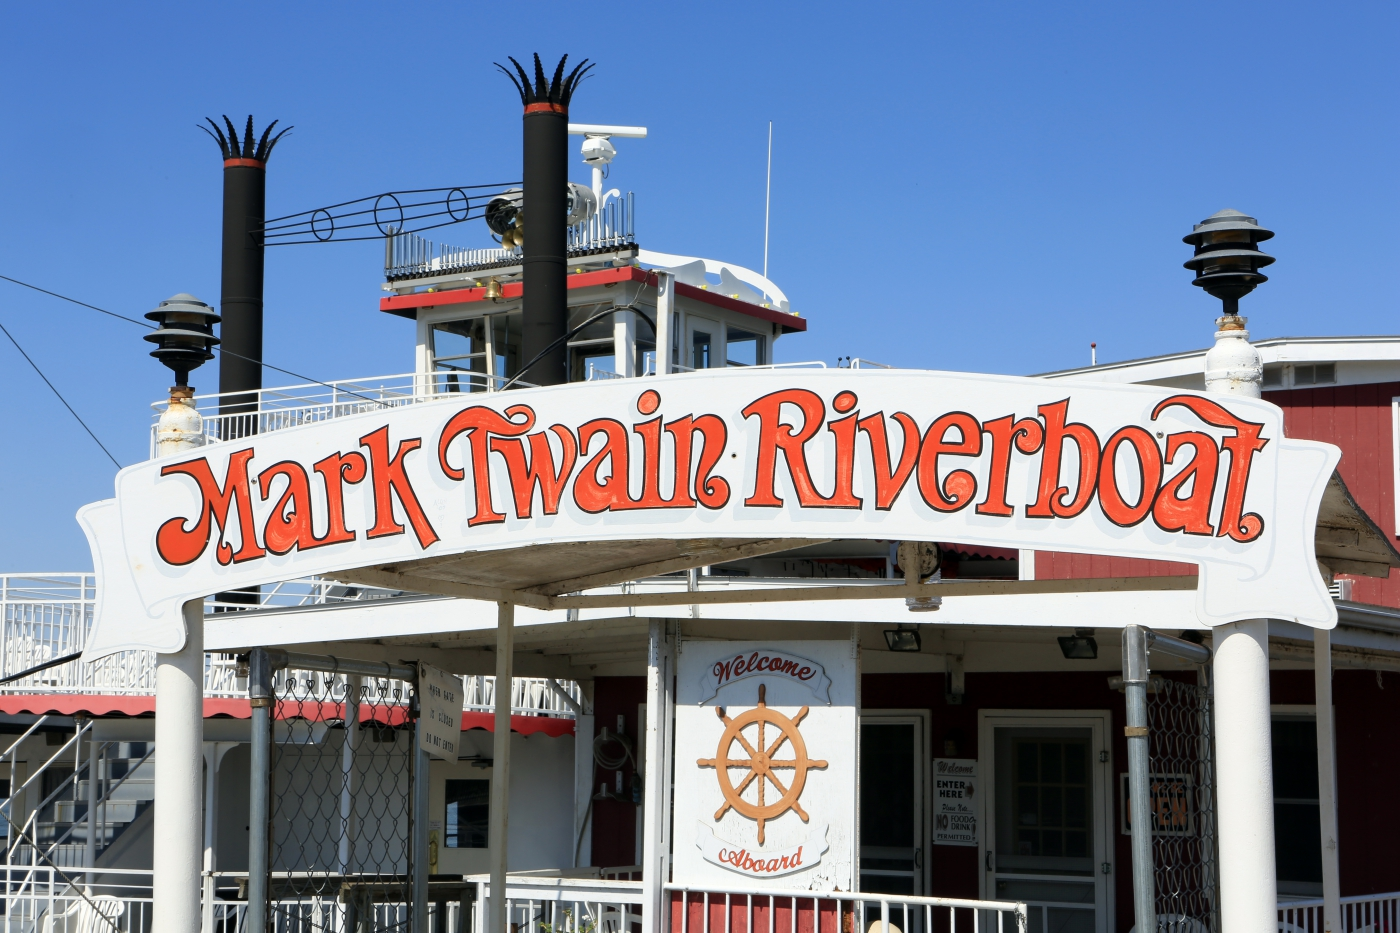 The famed Mark Twain Riverboat.